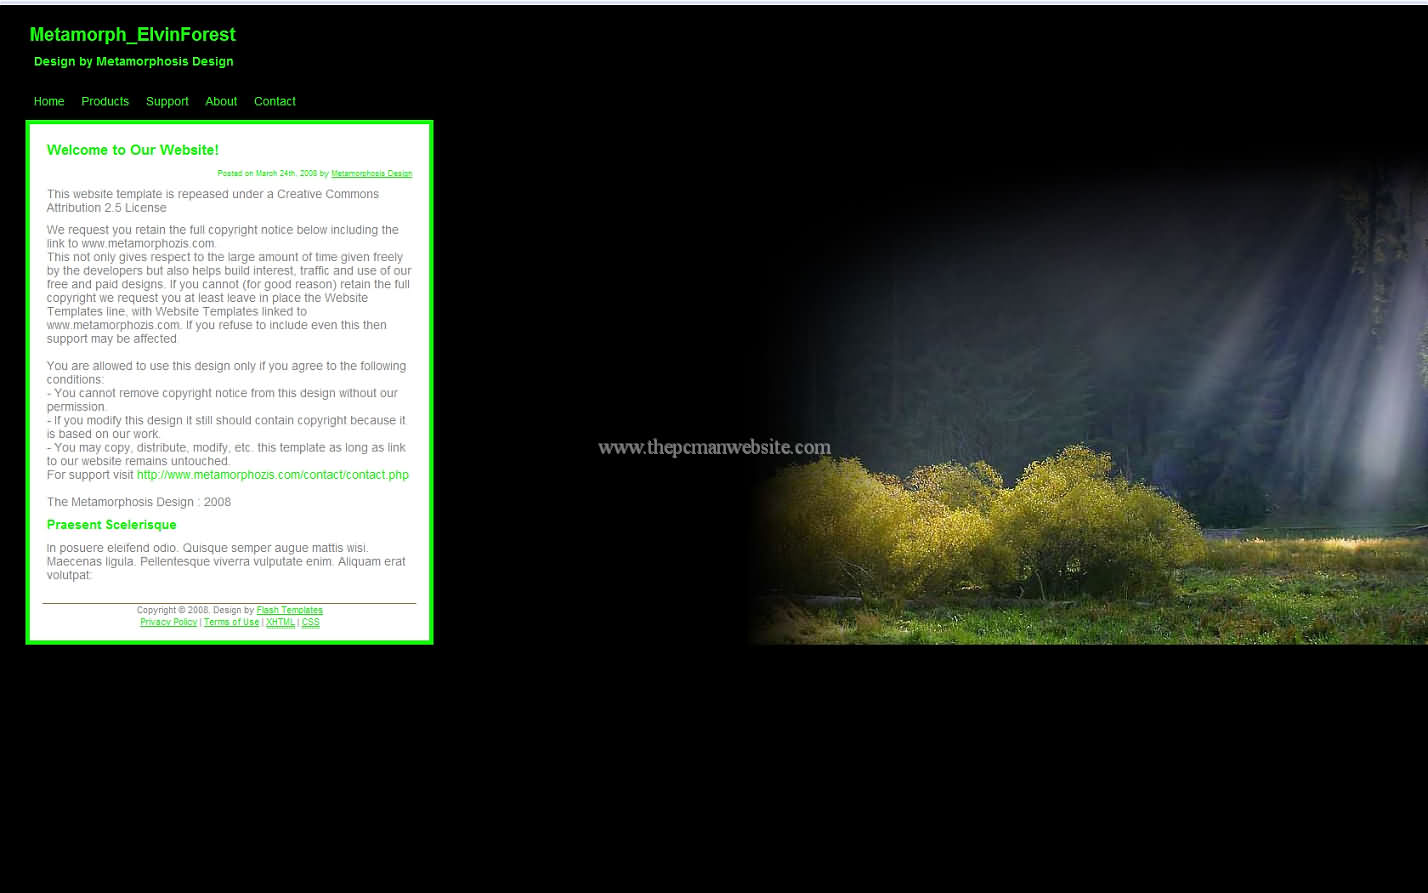 Metamorph Elvinforest css template